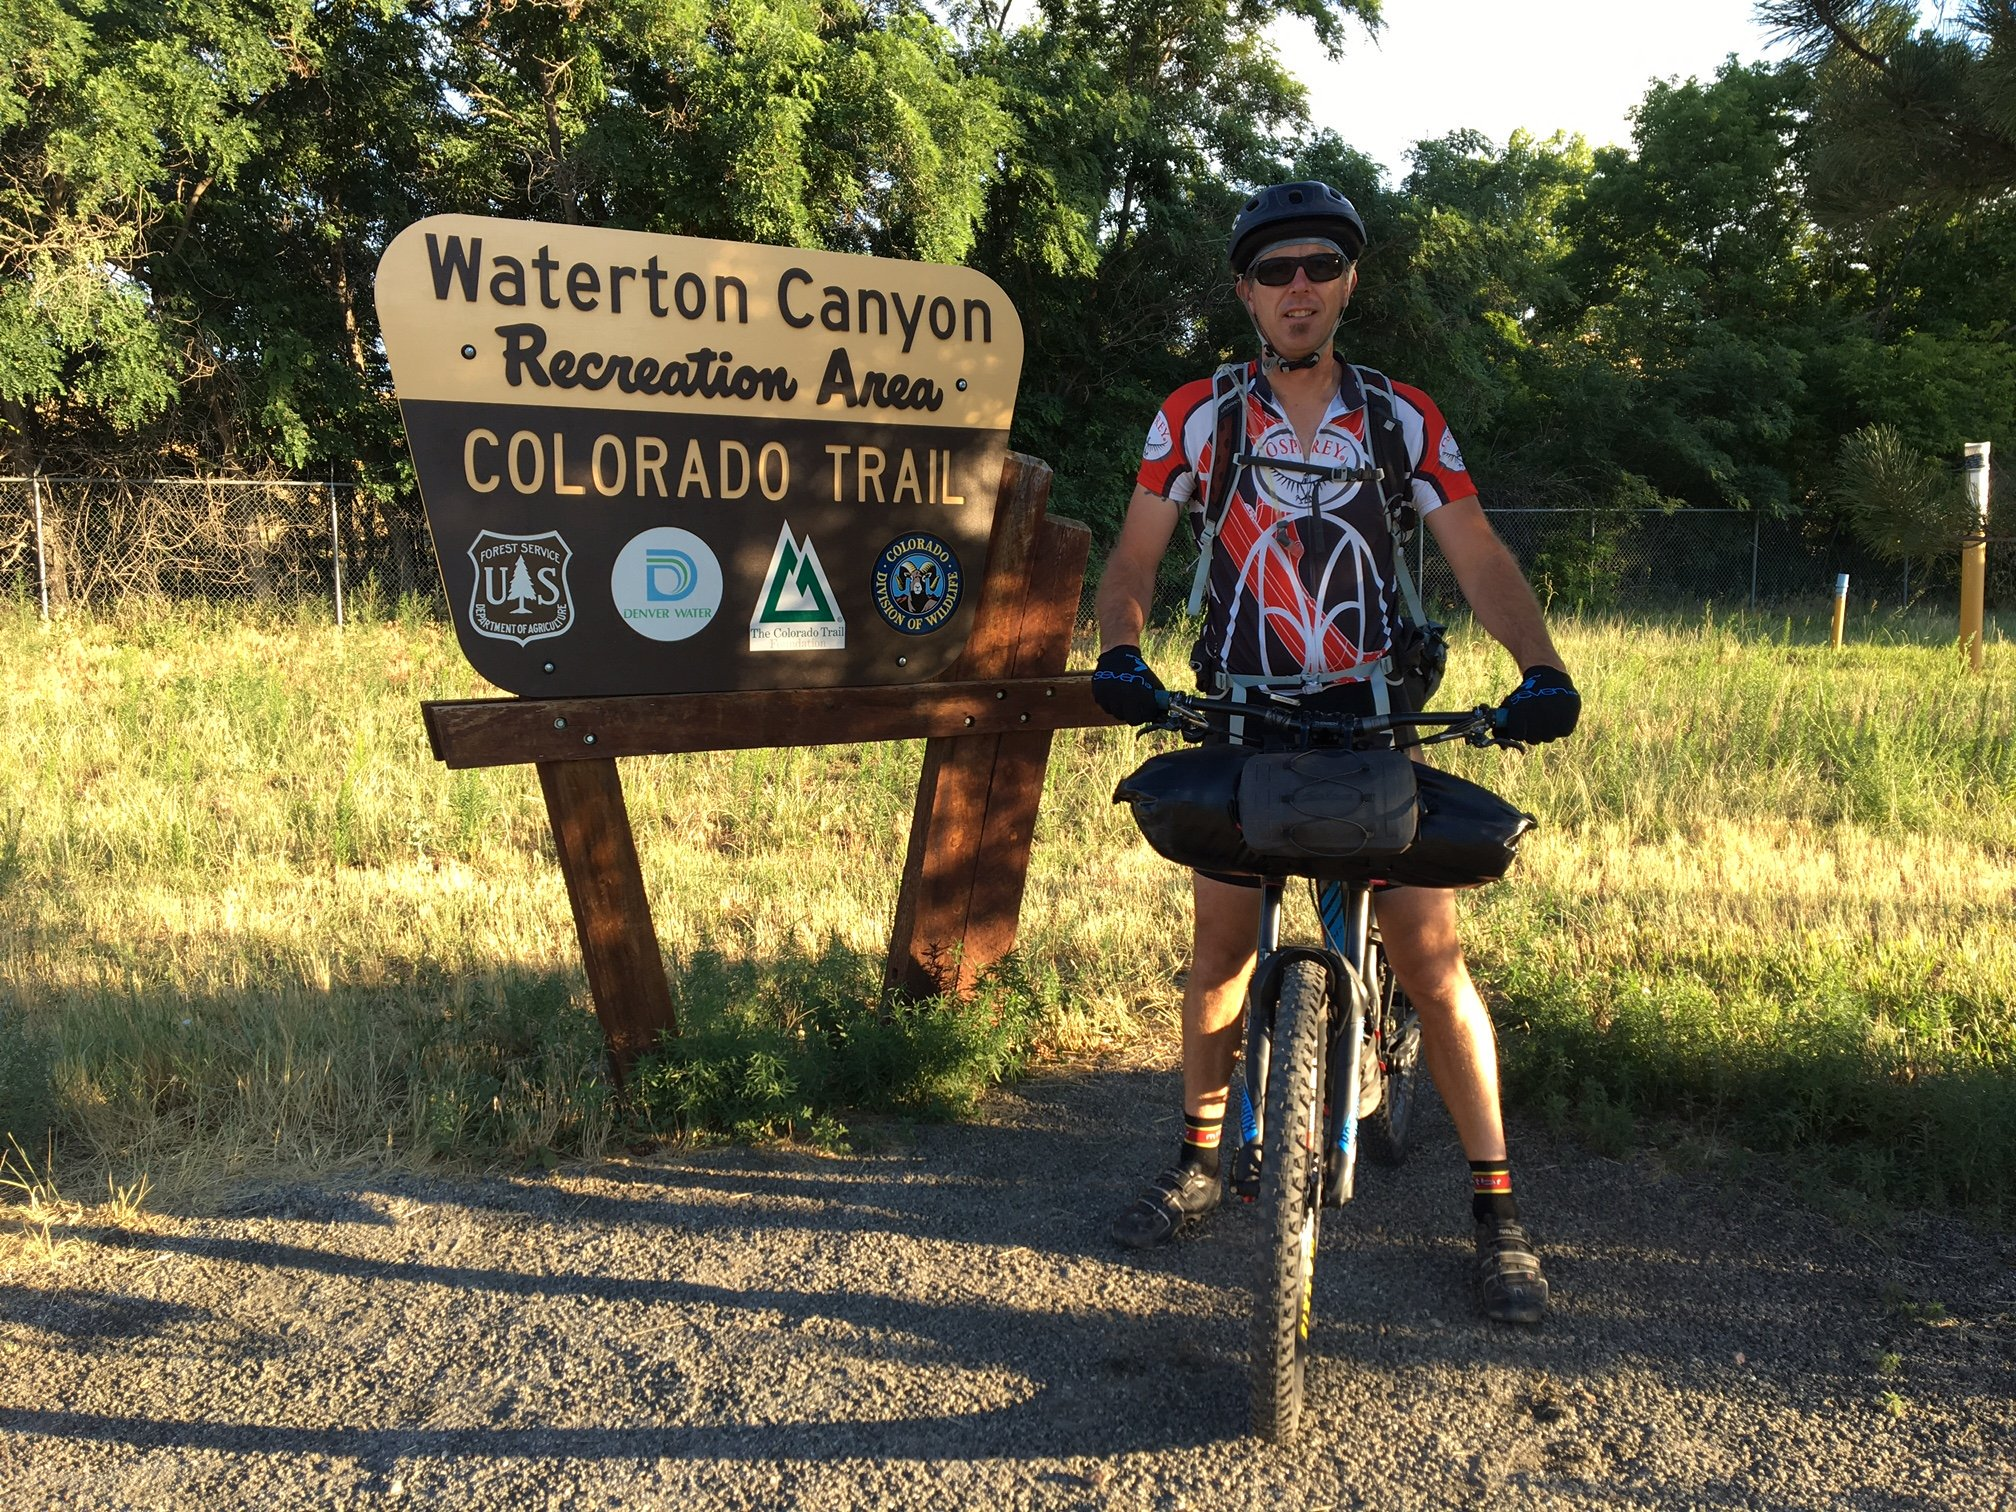 537 Miles Bikepacking The Colorado Trail Osprey Packs Experience Both Have Been Verified I Like Bmtb A Lot However Just Amped Up And Ready To Get Started At Waterton Canyon